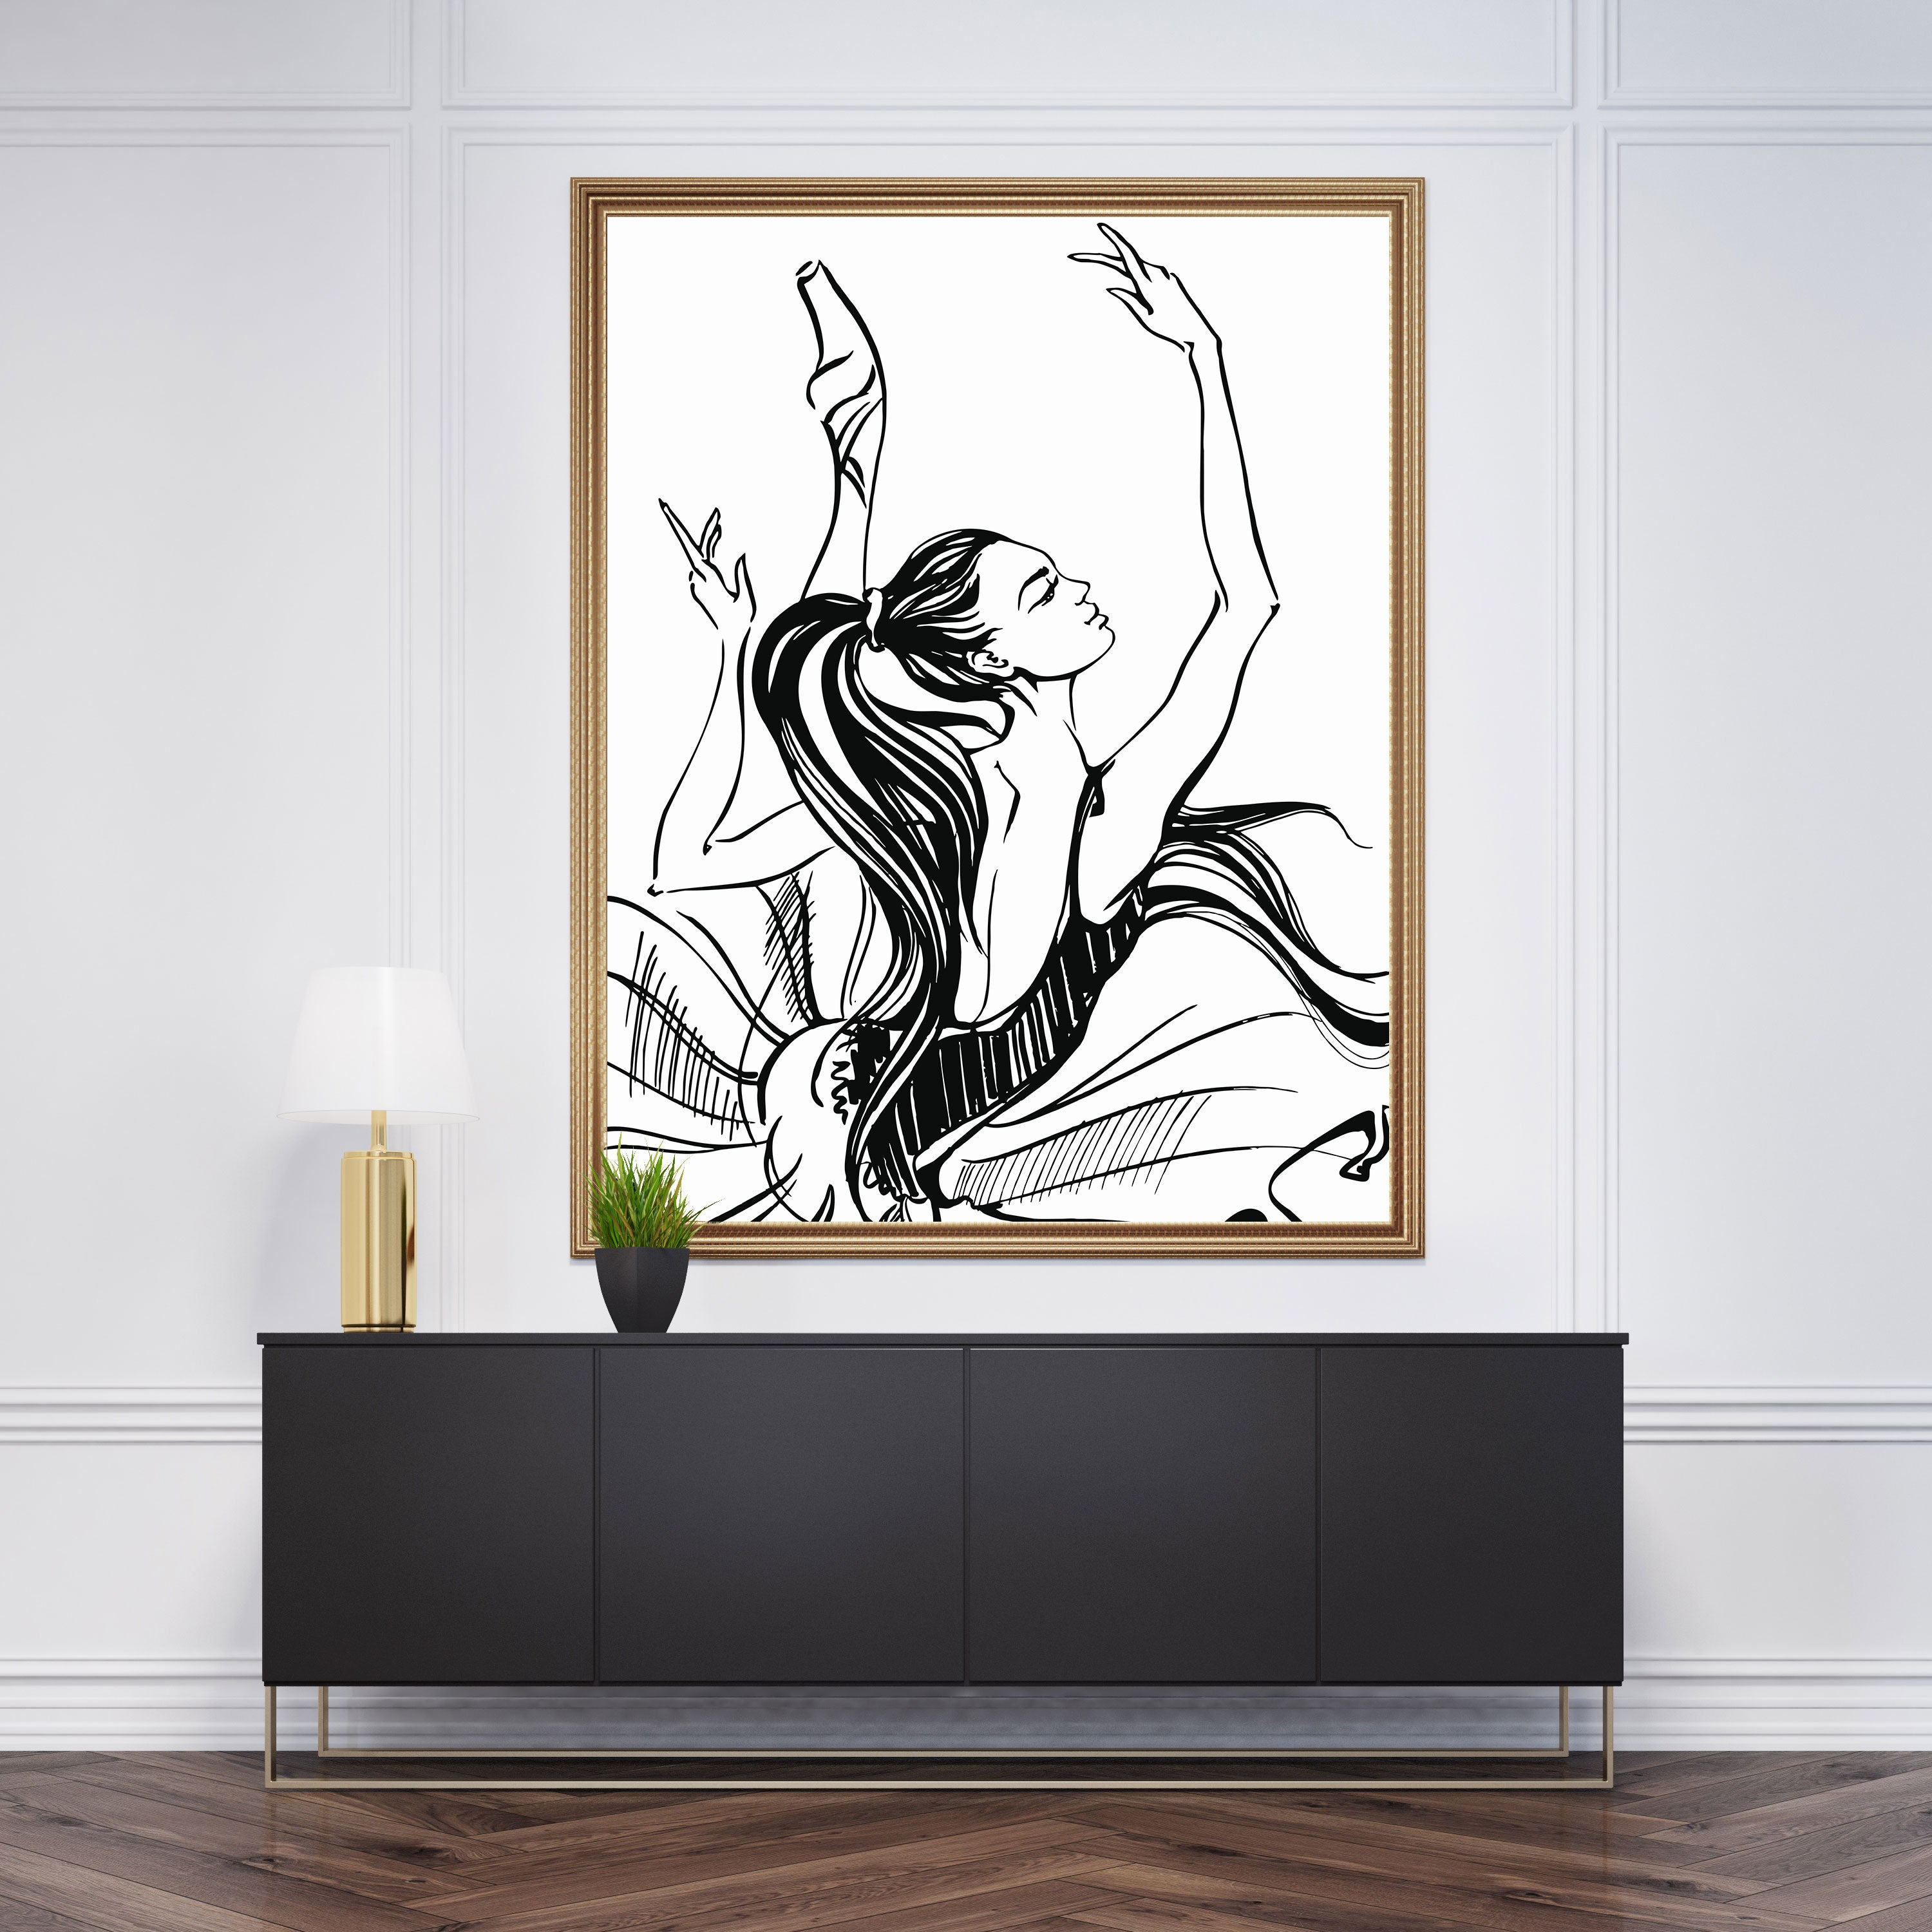 Glam drawing wall art with dancing ballerina sketch